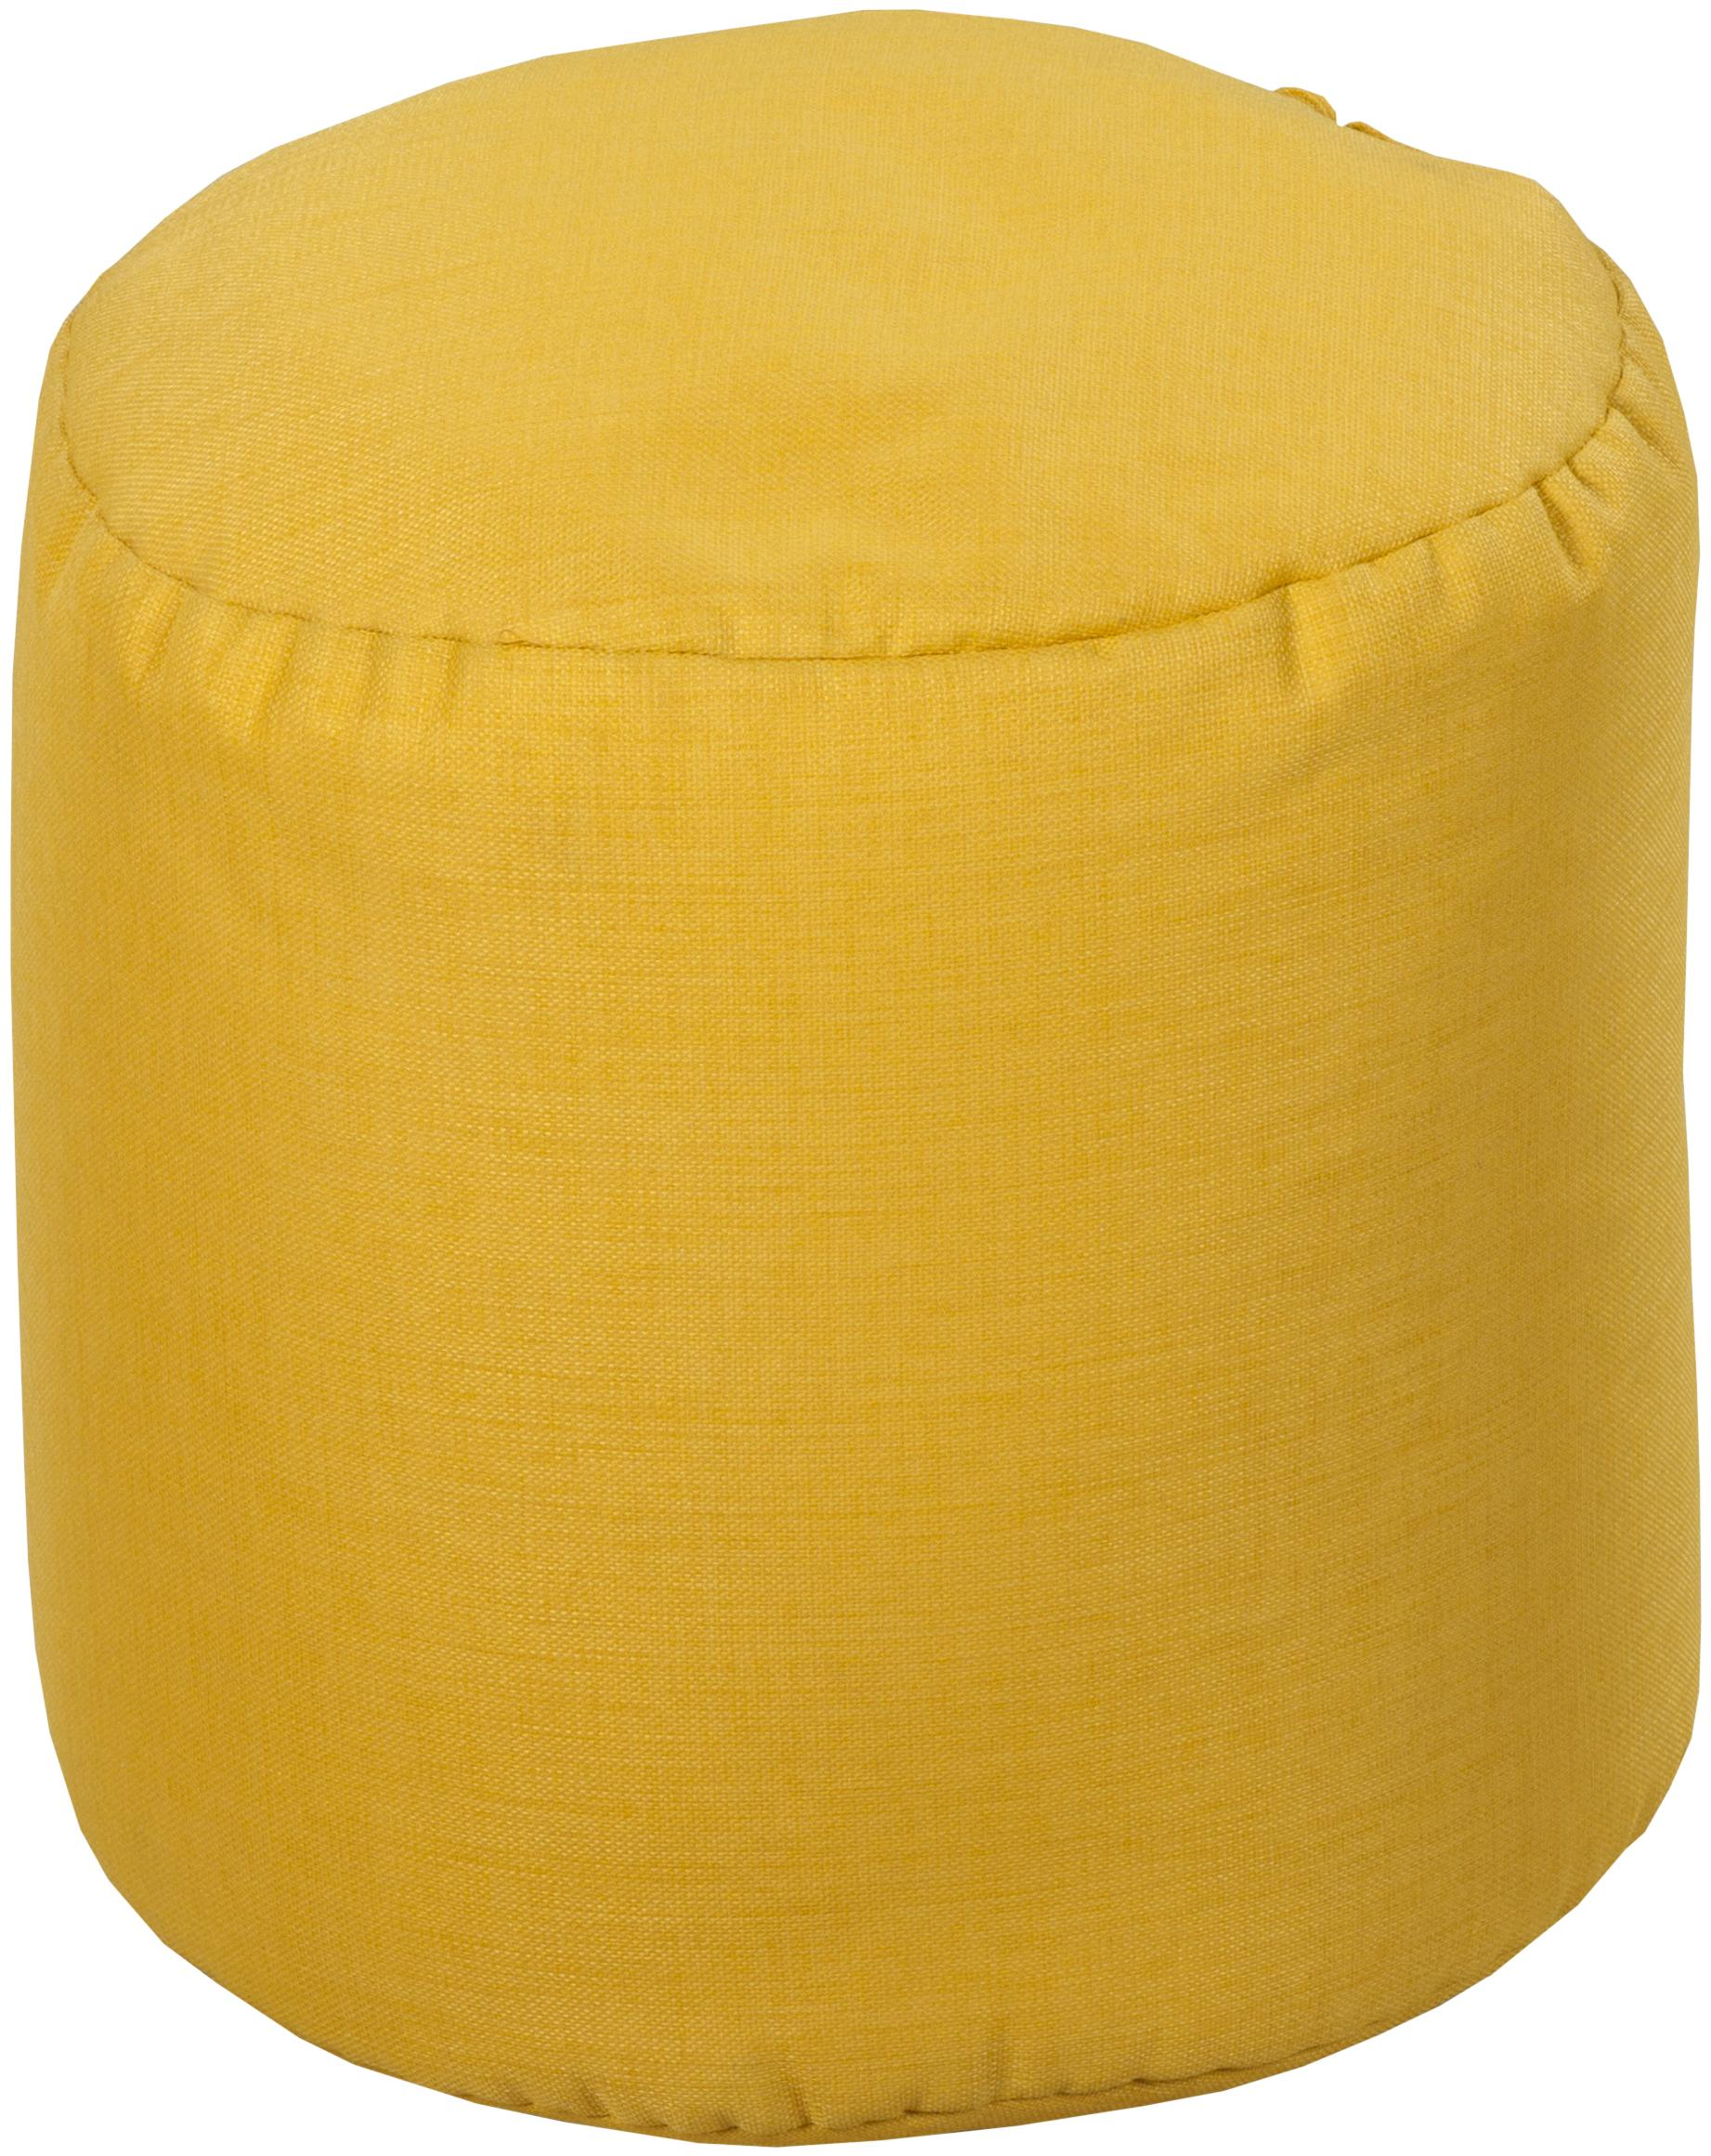 """Surya Rugs Poufs Round 18"""" Pouf - Item Number: POUF-108"""